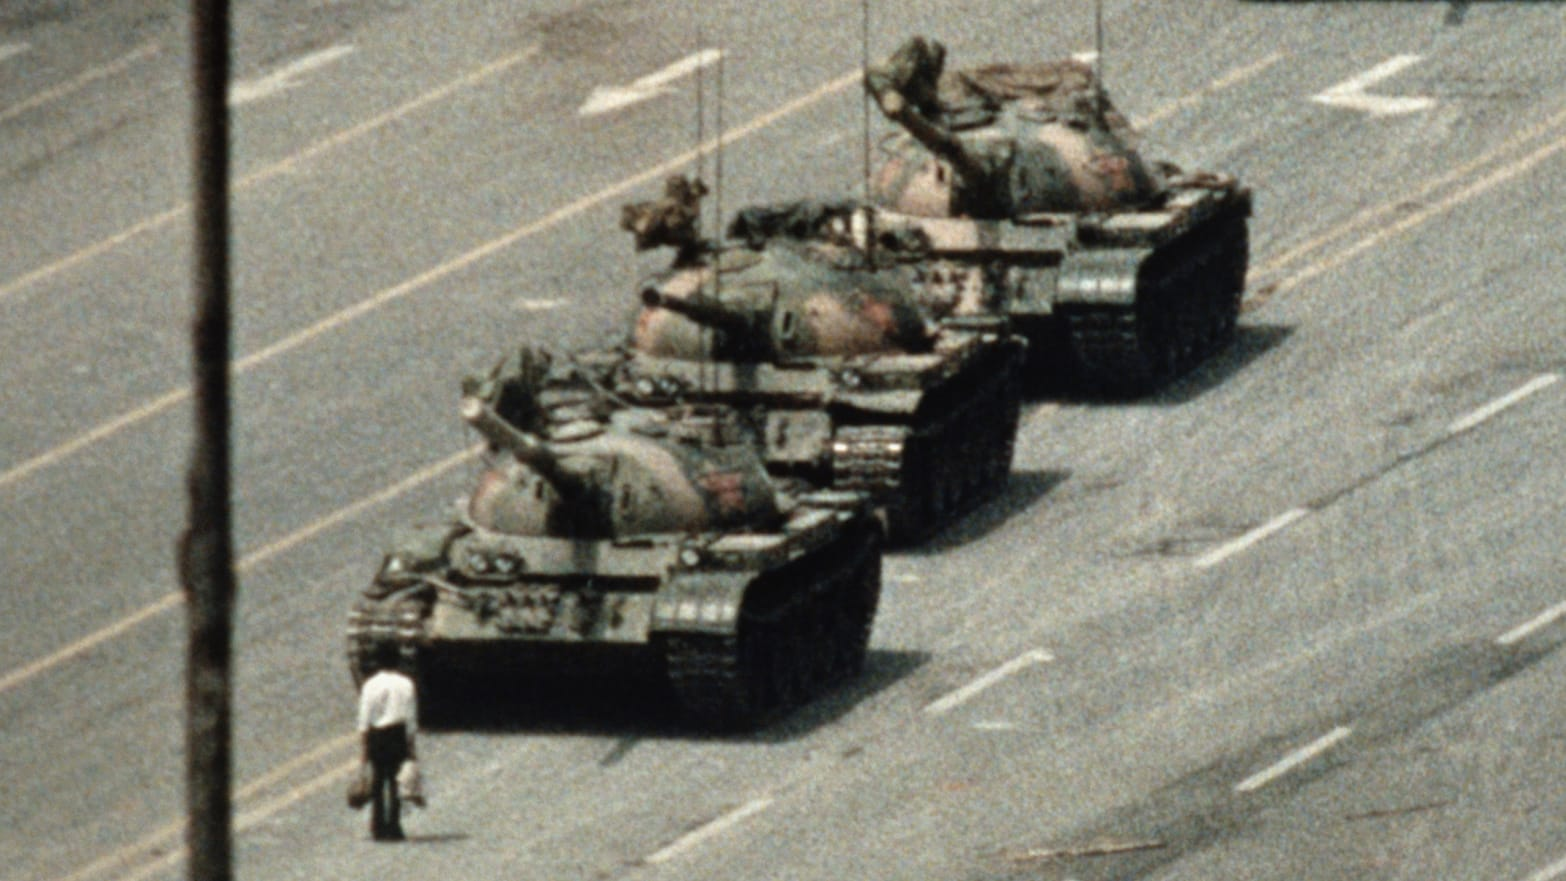 Tiananmen Square: Why China's Leaders Want to Erase 'May 35'